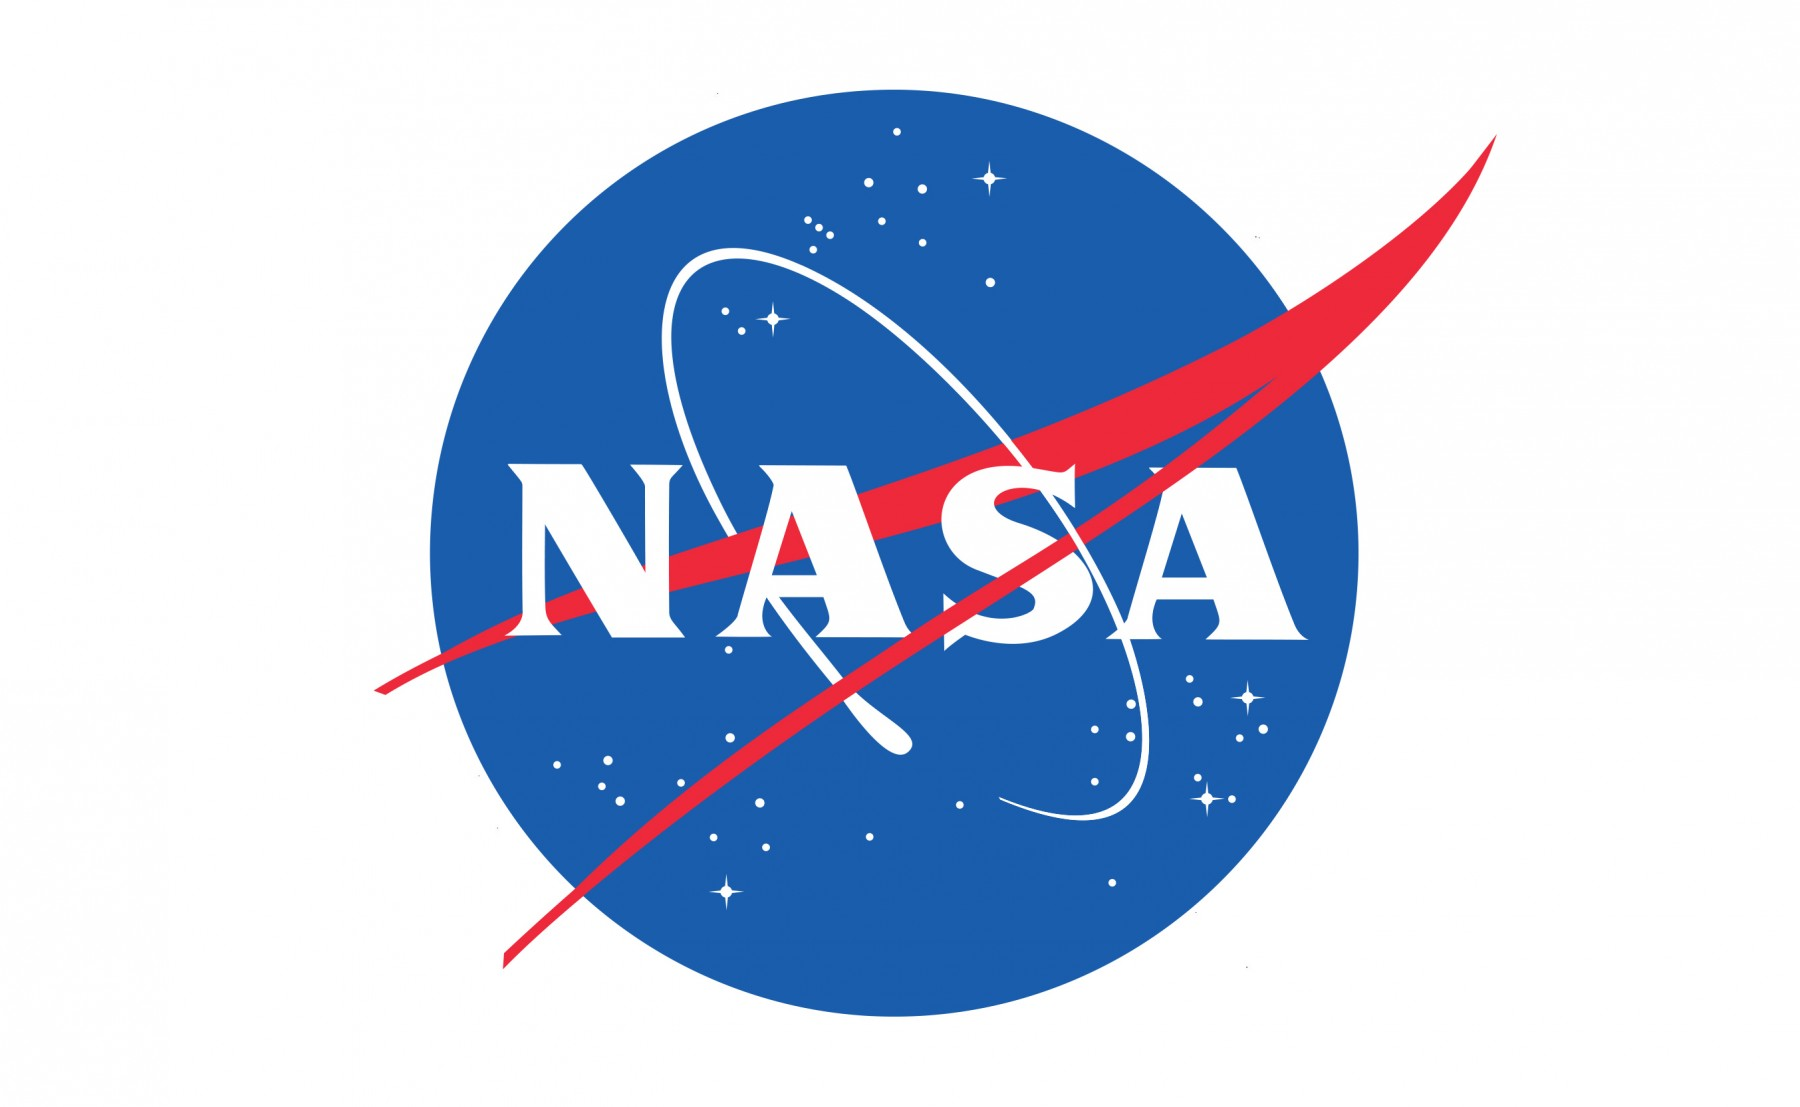 US-NASA-Seal-logo